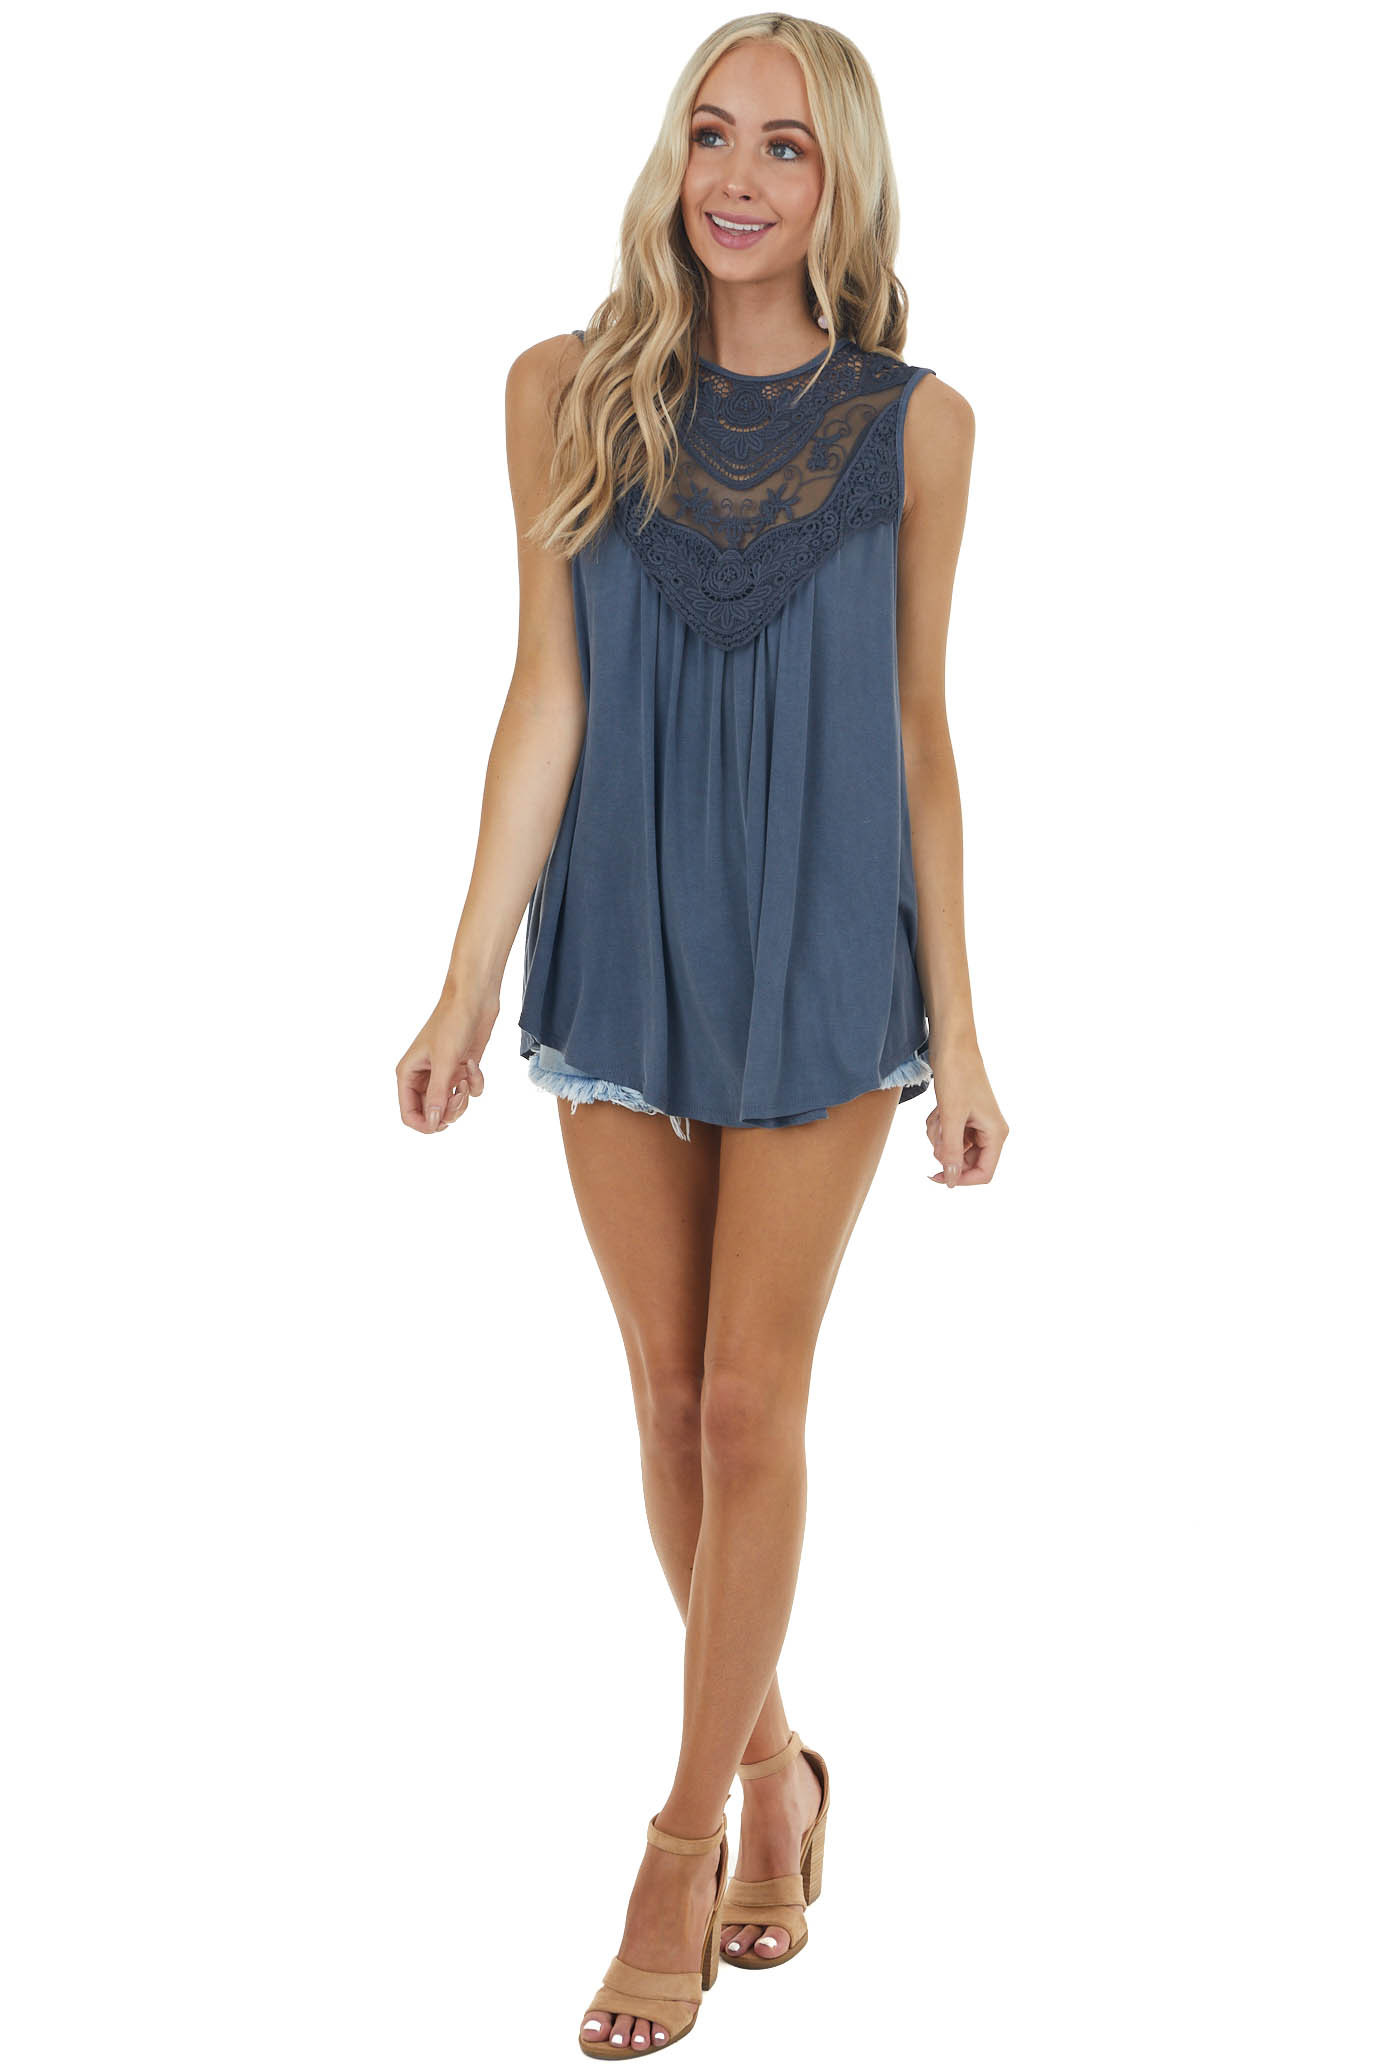 Stormy Blue Flowy Sleeveless Top with Sheer Crochet Details